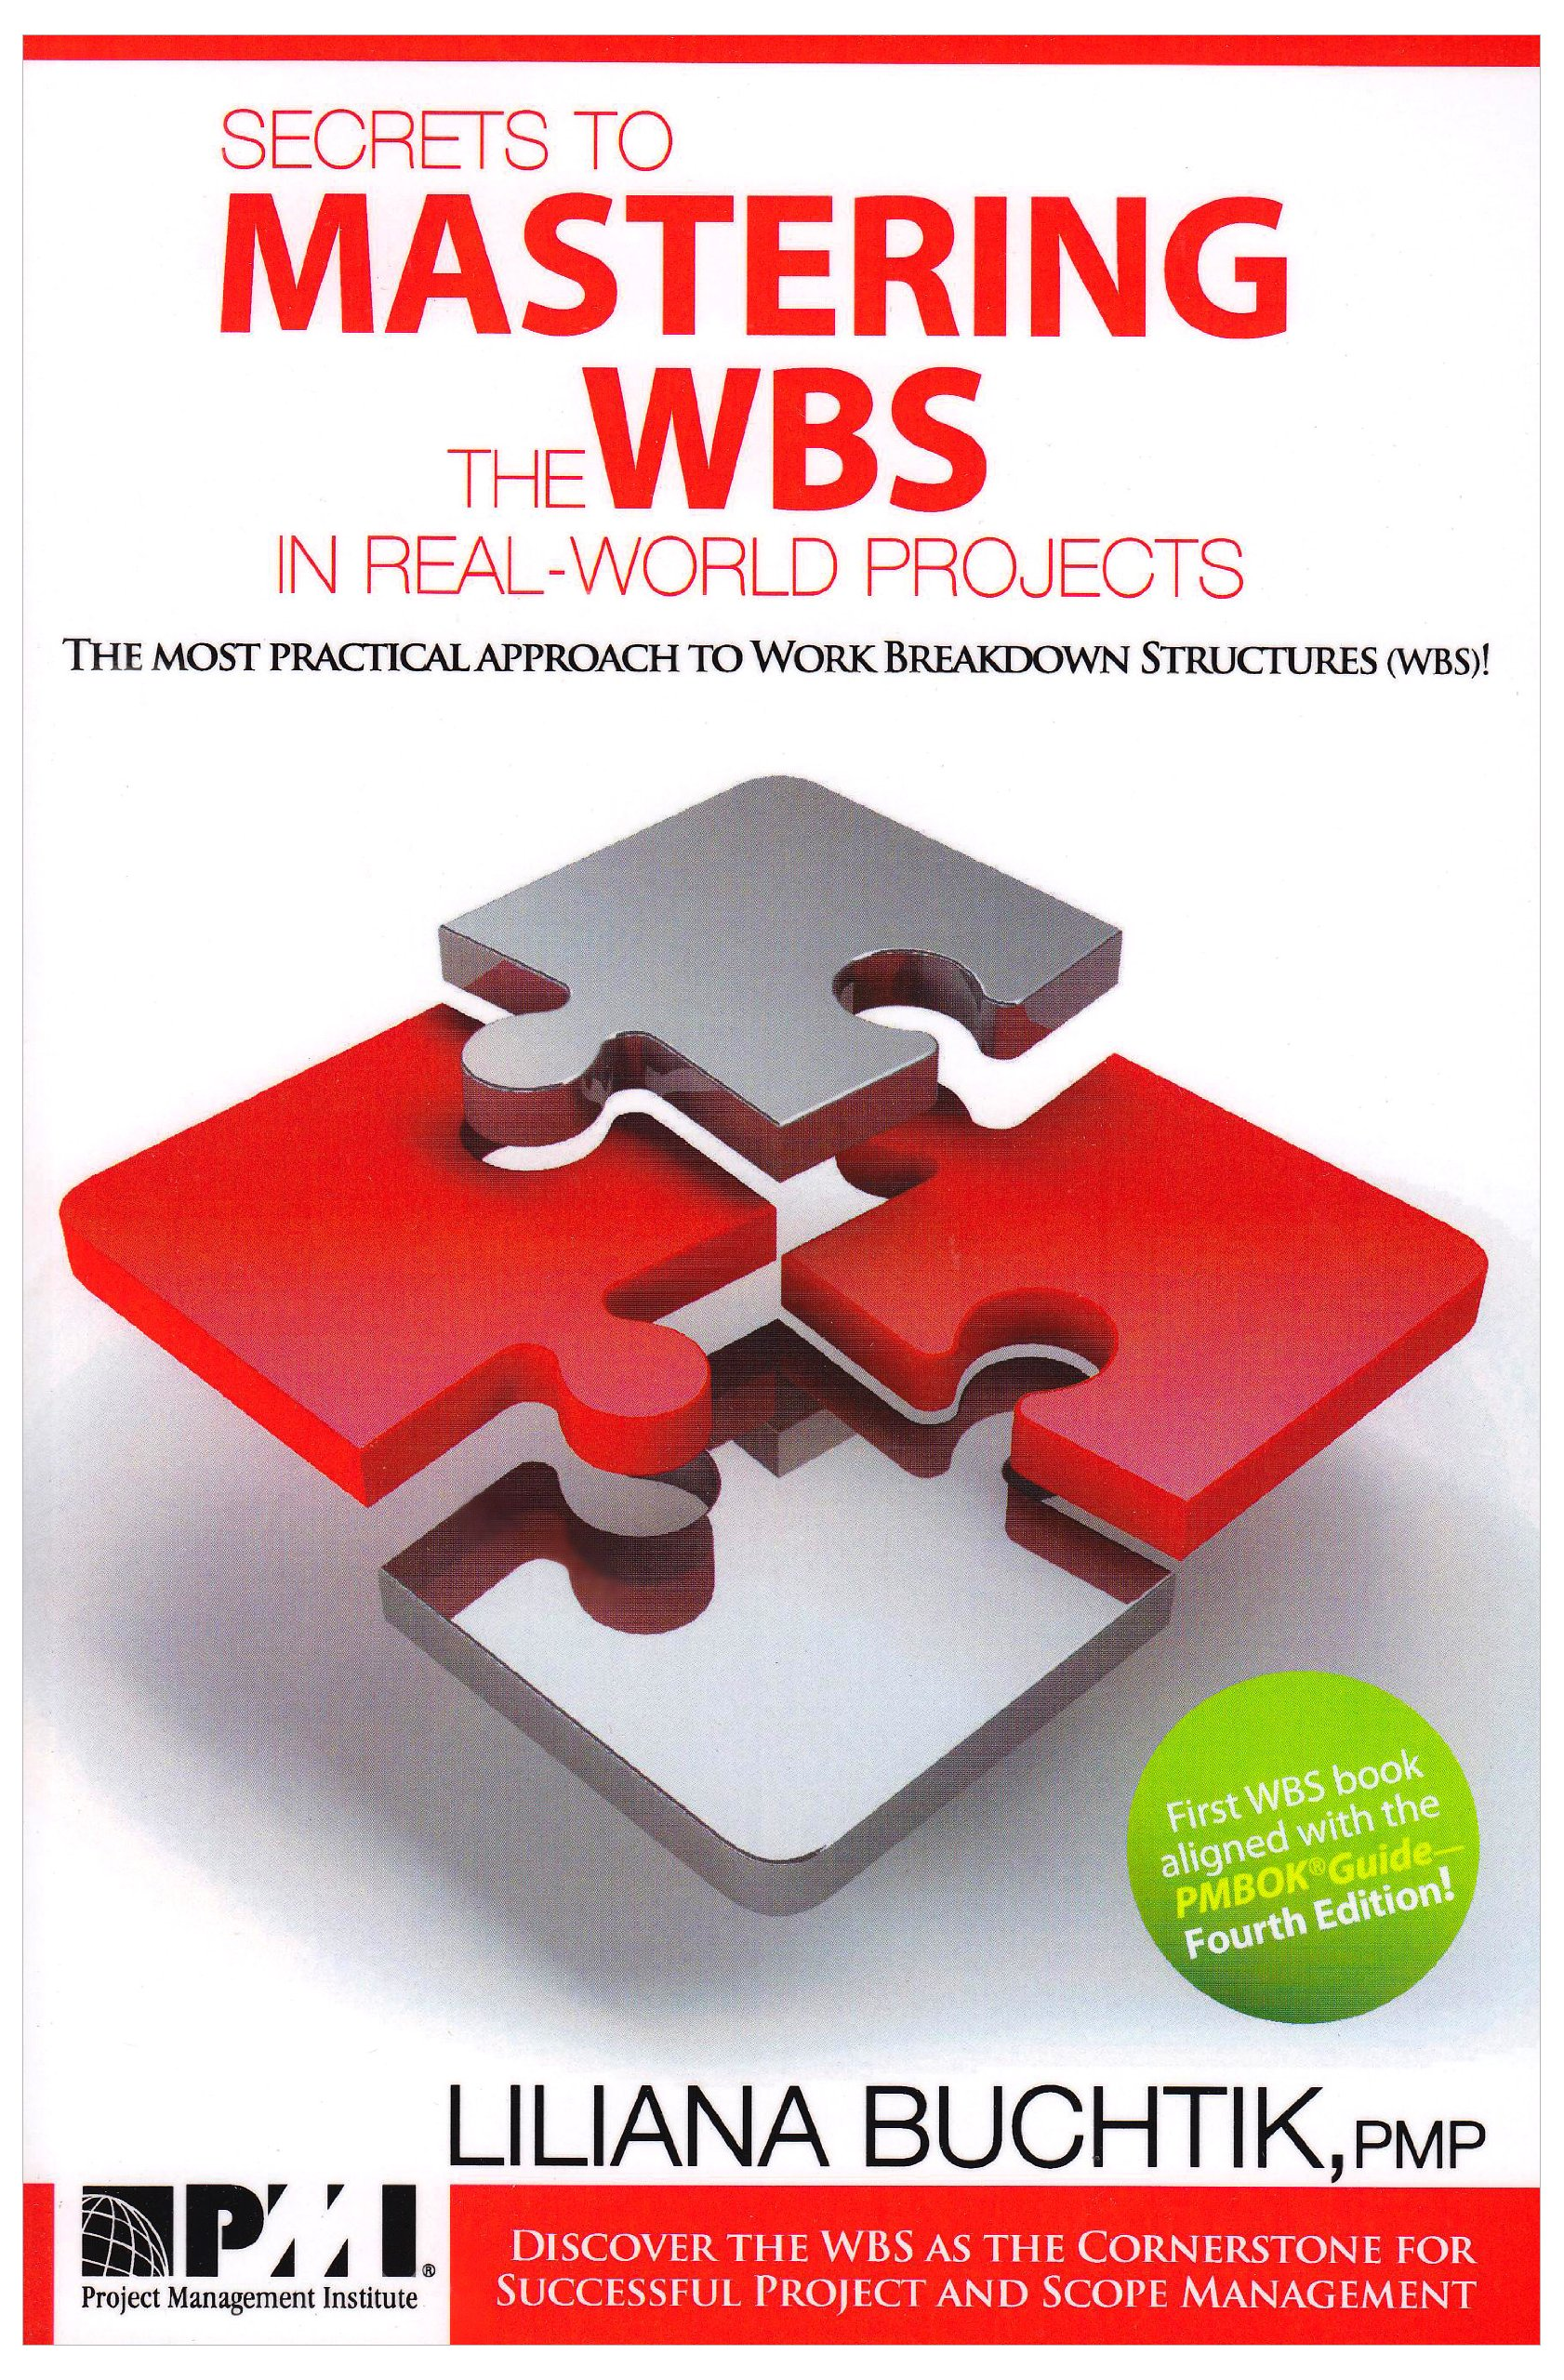 Secrets to Mastering the WBS in Real-World Projects: Amazon.es: Liliana Buchtik: Libros en idiomas extranjeros